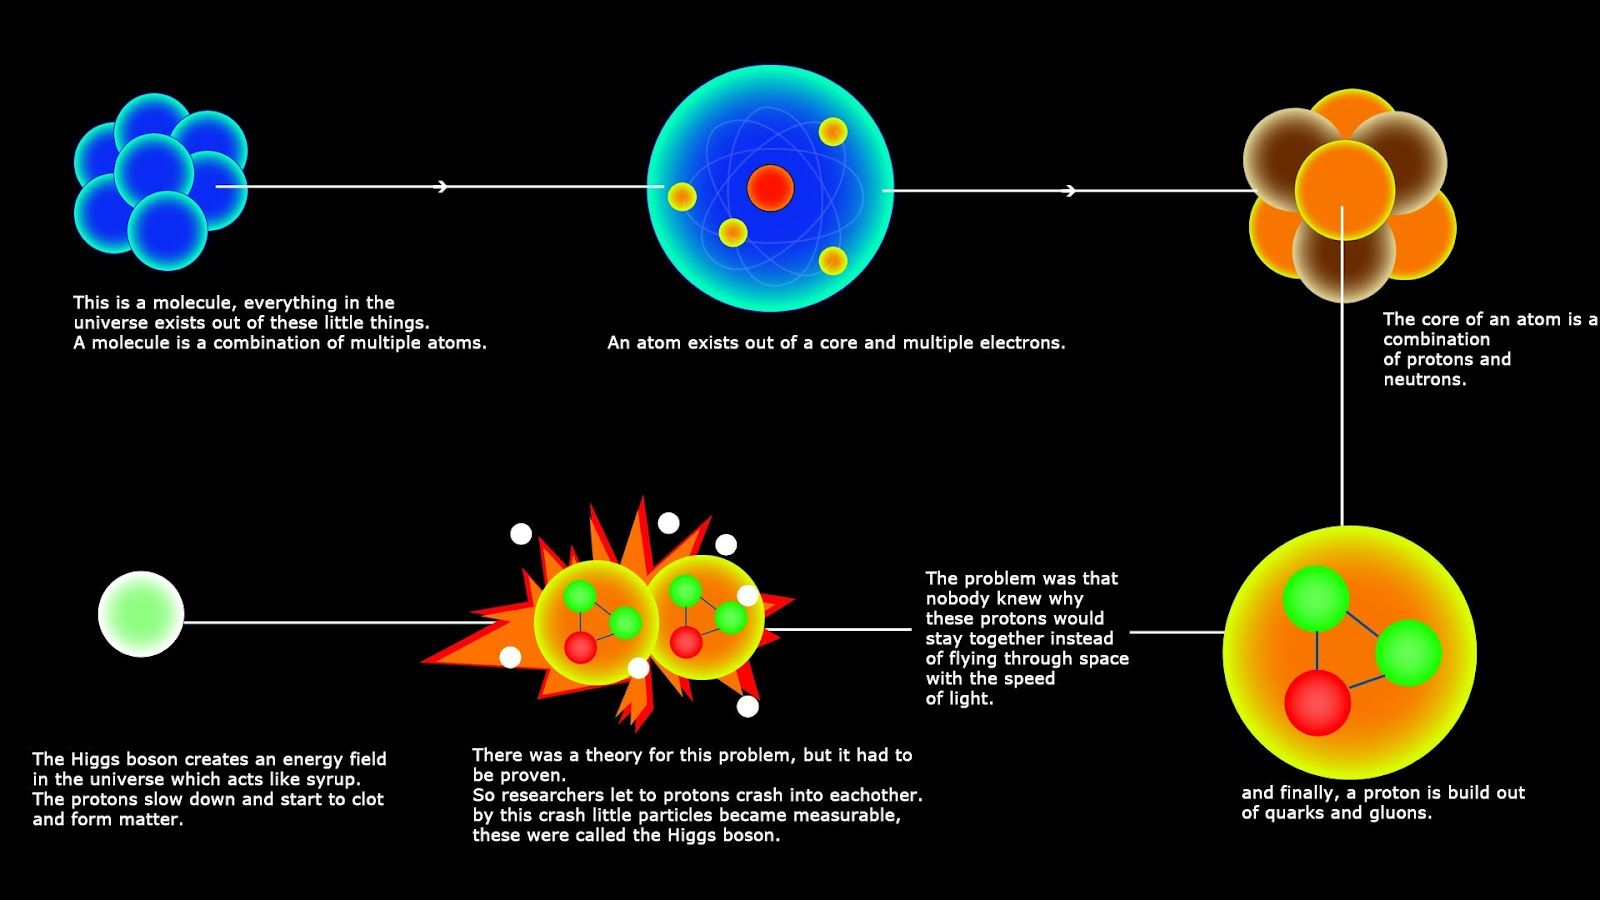 higgs boson | Higgs Boson Explained - Wallpaper ...